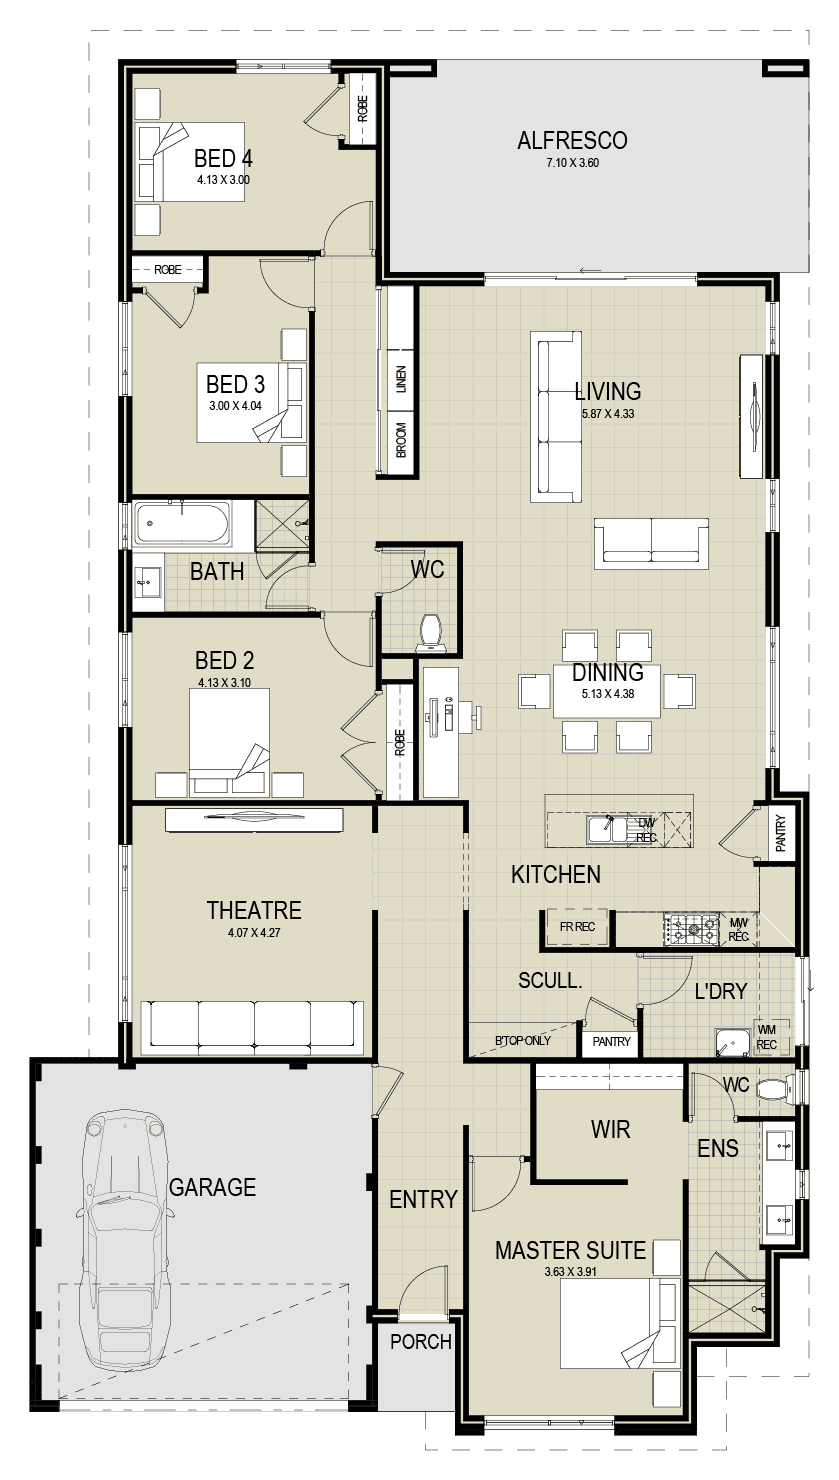 The Sandalford floor plan